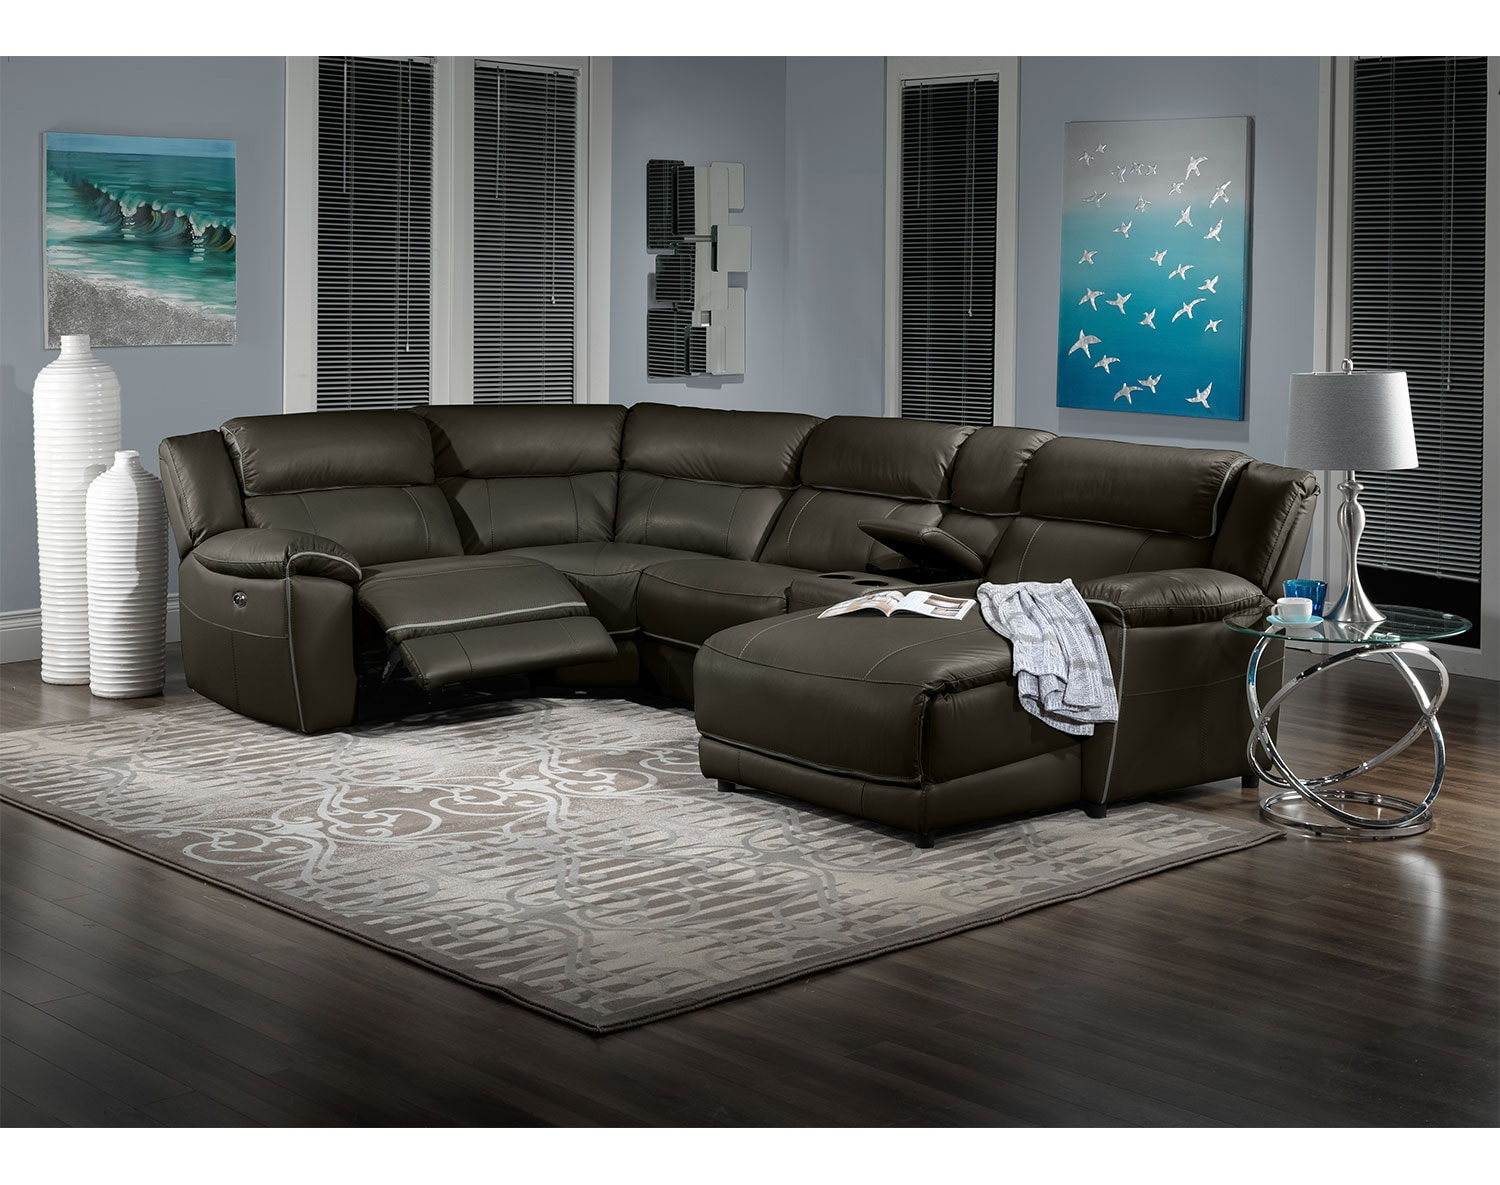 Holton 5 piece sectional charcoal grey leon 39 s for 5 piece living room packages